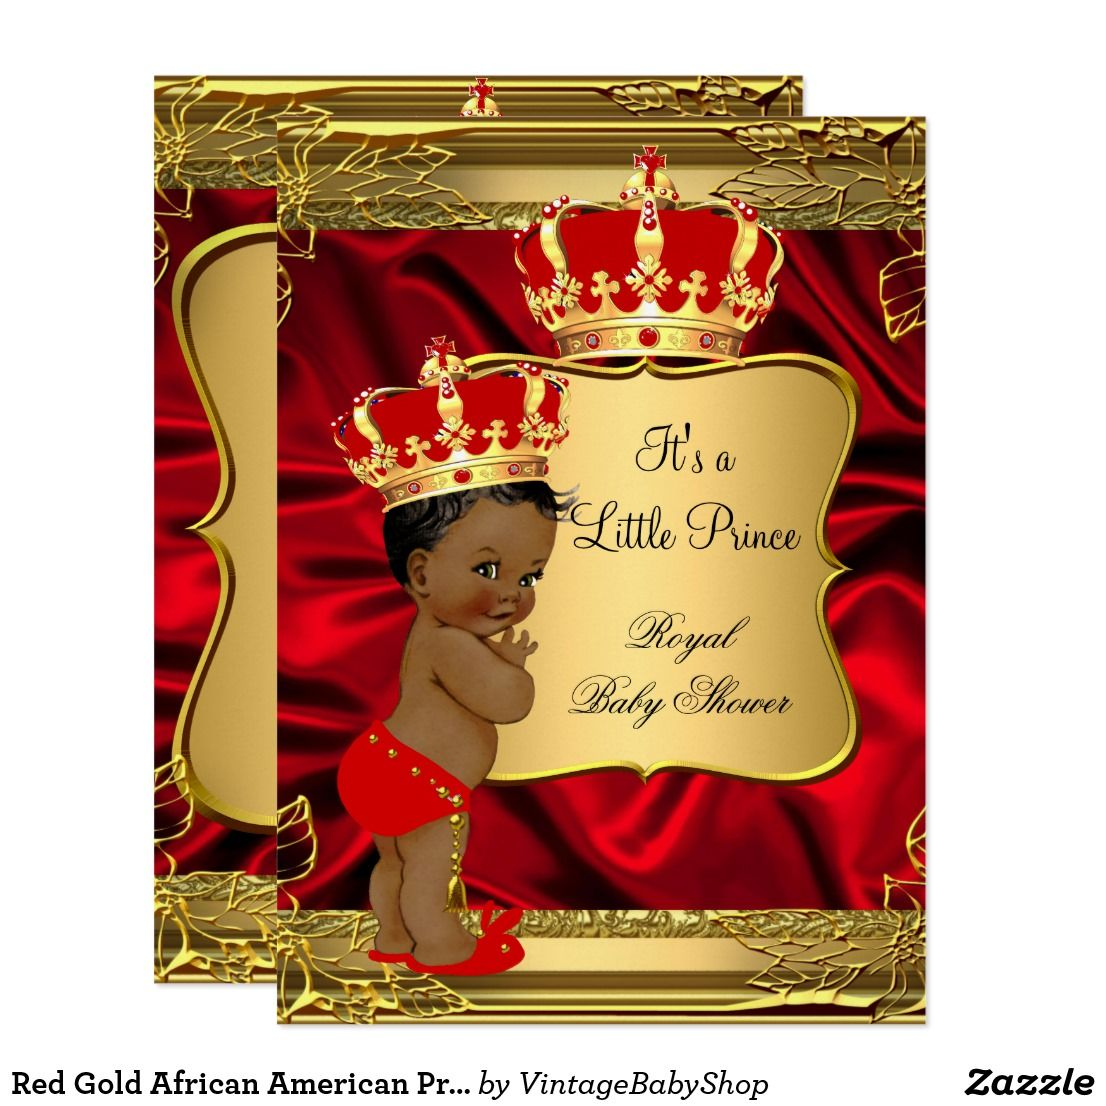 Red Gold African American Prince Baby Shower Invitation | Baby ...